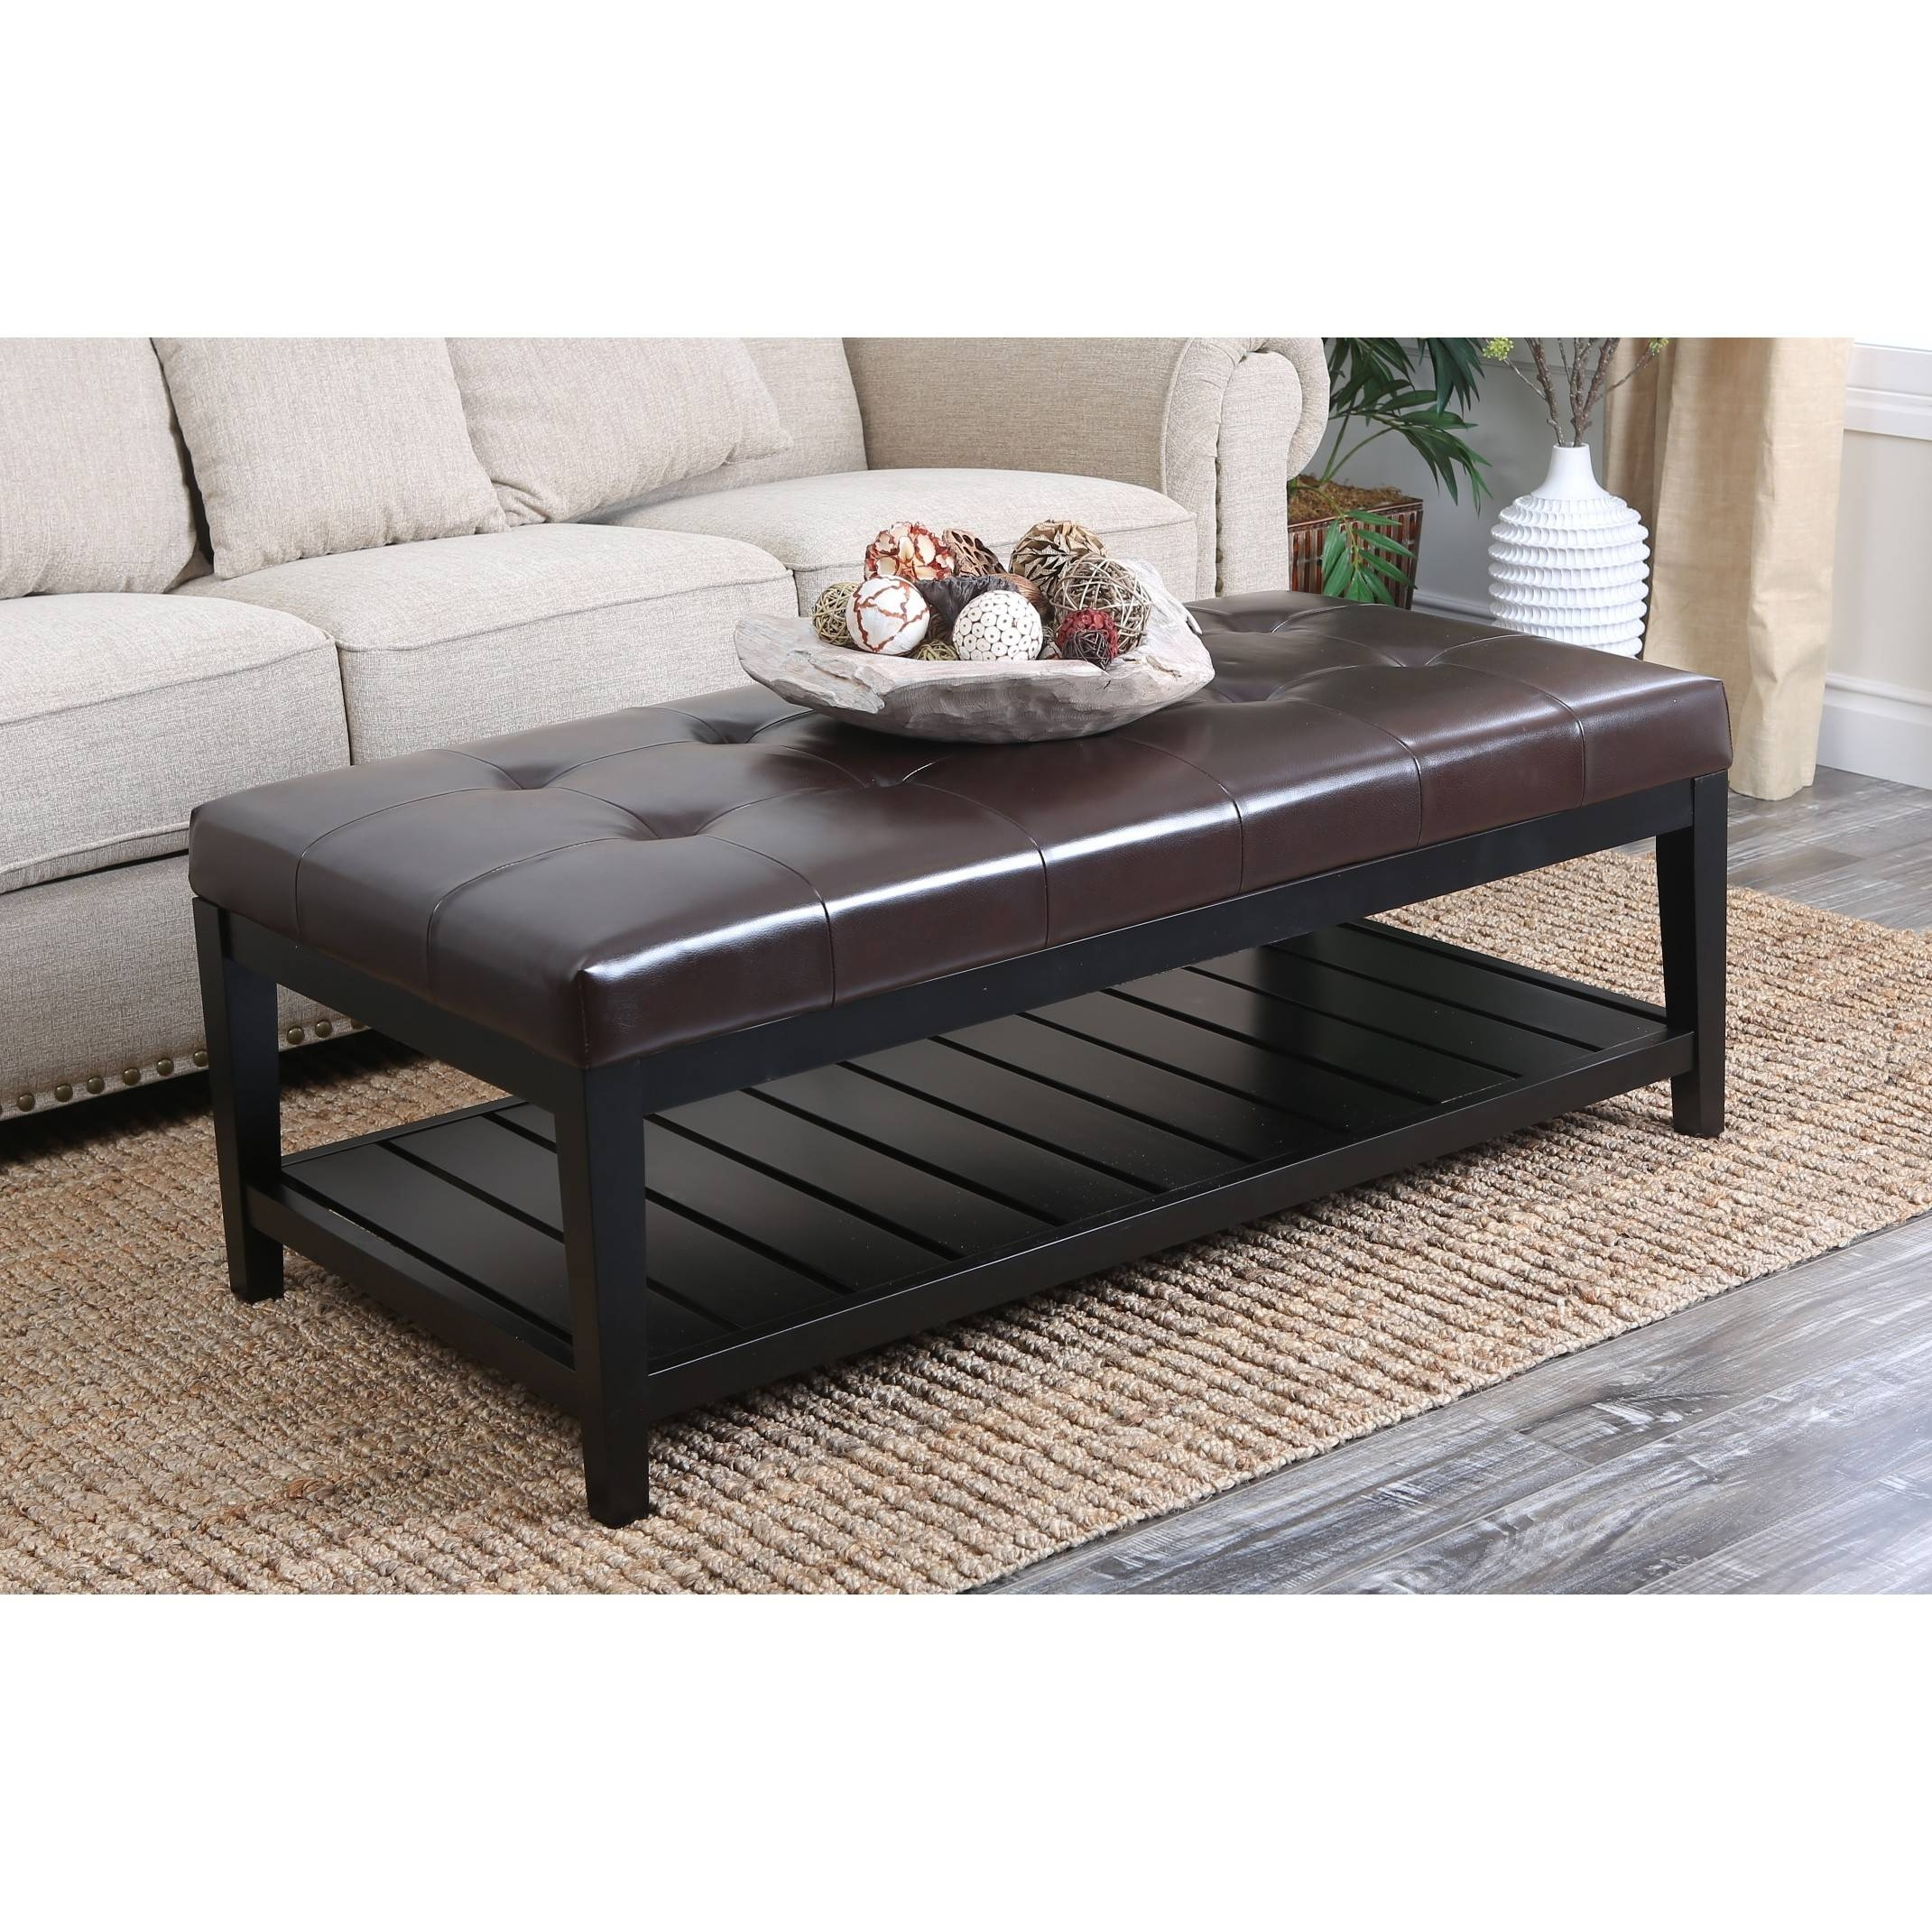 pull single end sofa best pictures furniture ideas drawer table tables drawers wood and tray side inspiring narrow intriguing coffee images in glass out most storage with